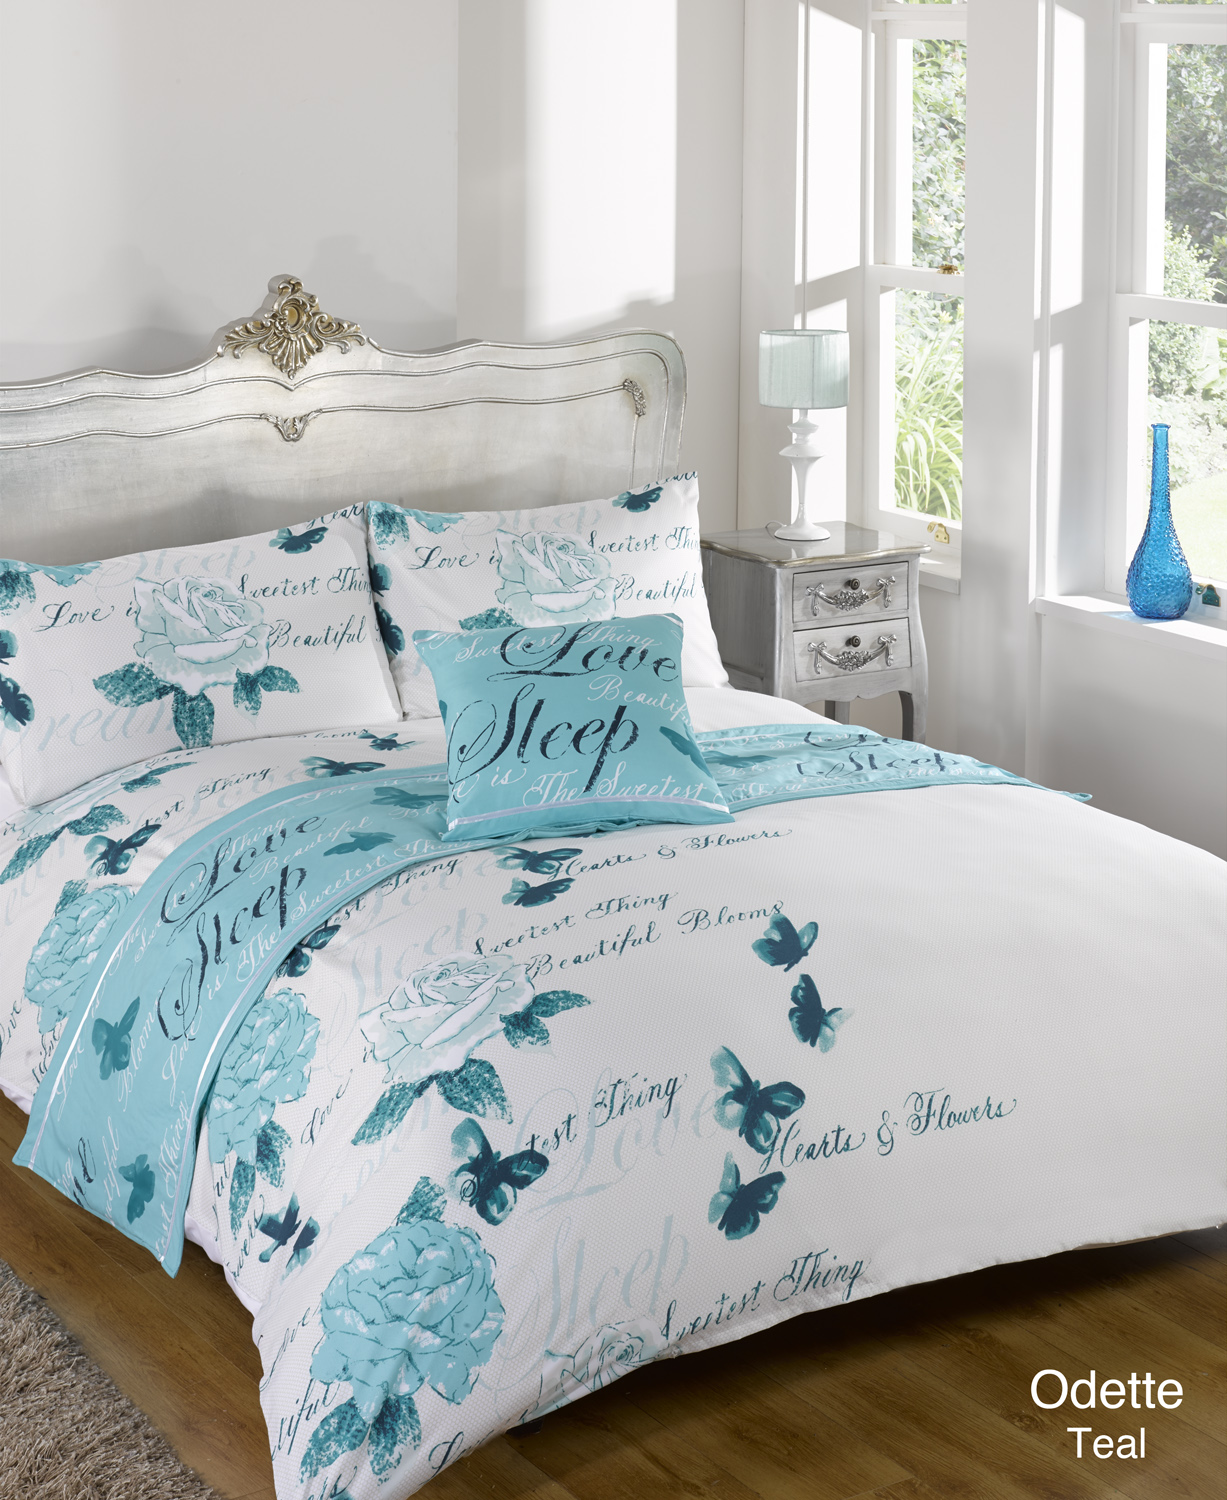 duvet quilt bedding bed in a bag teal single double king kingsize super king ebay. Black Bedroom Furniture Sets. Home Design Ideas